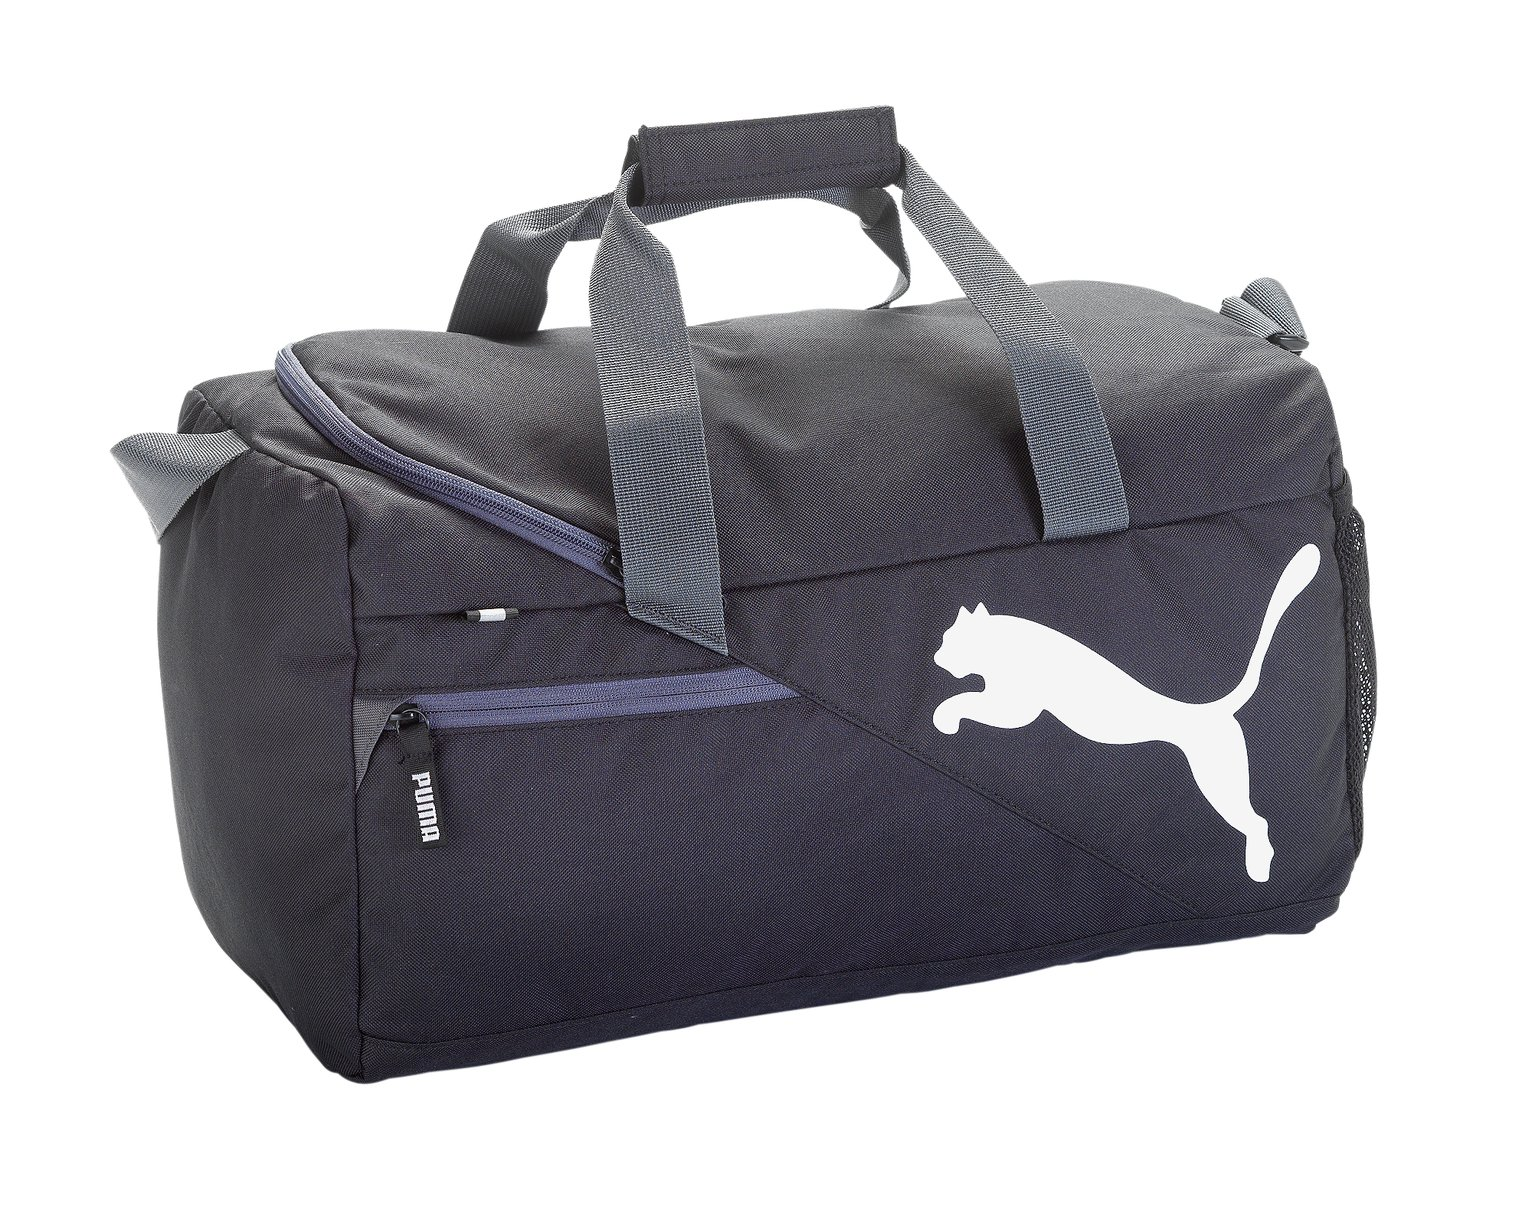 Sports Bags Mens Amp Womens Sports Bags Sports Bags Home Page 0ec03d3d22a94